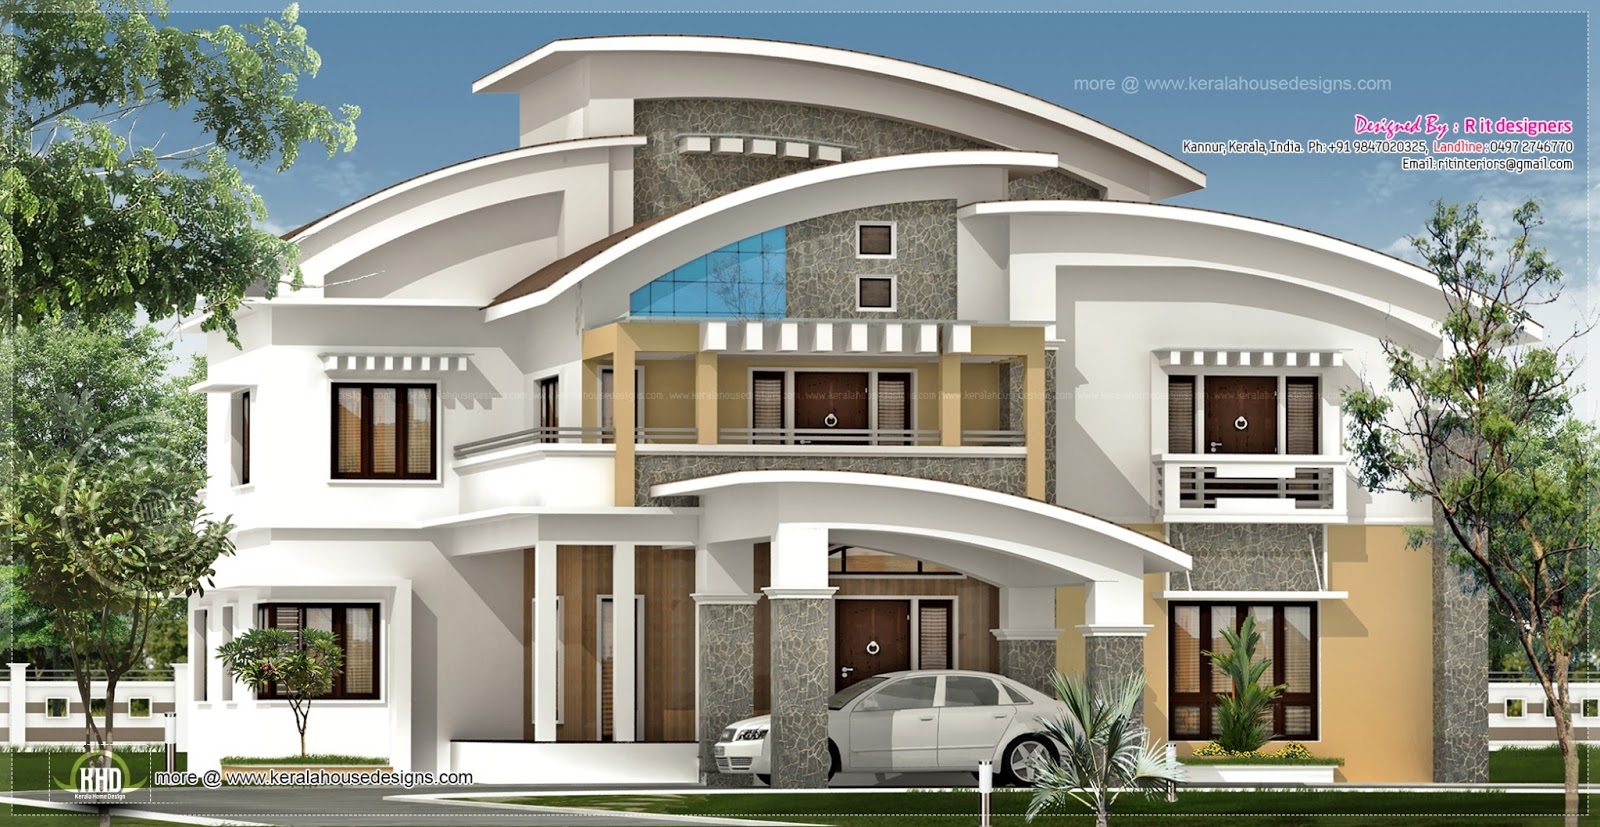 3750 square feet luxury villa exterior | House Design Plans